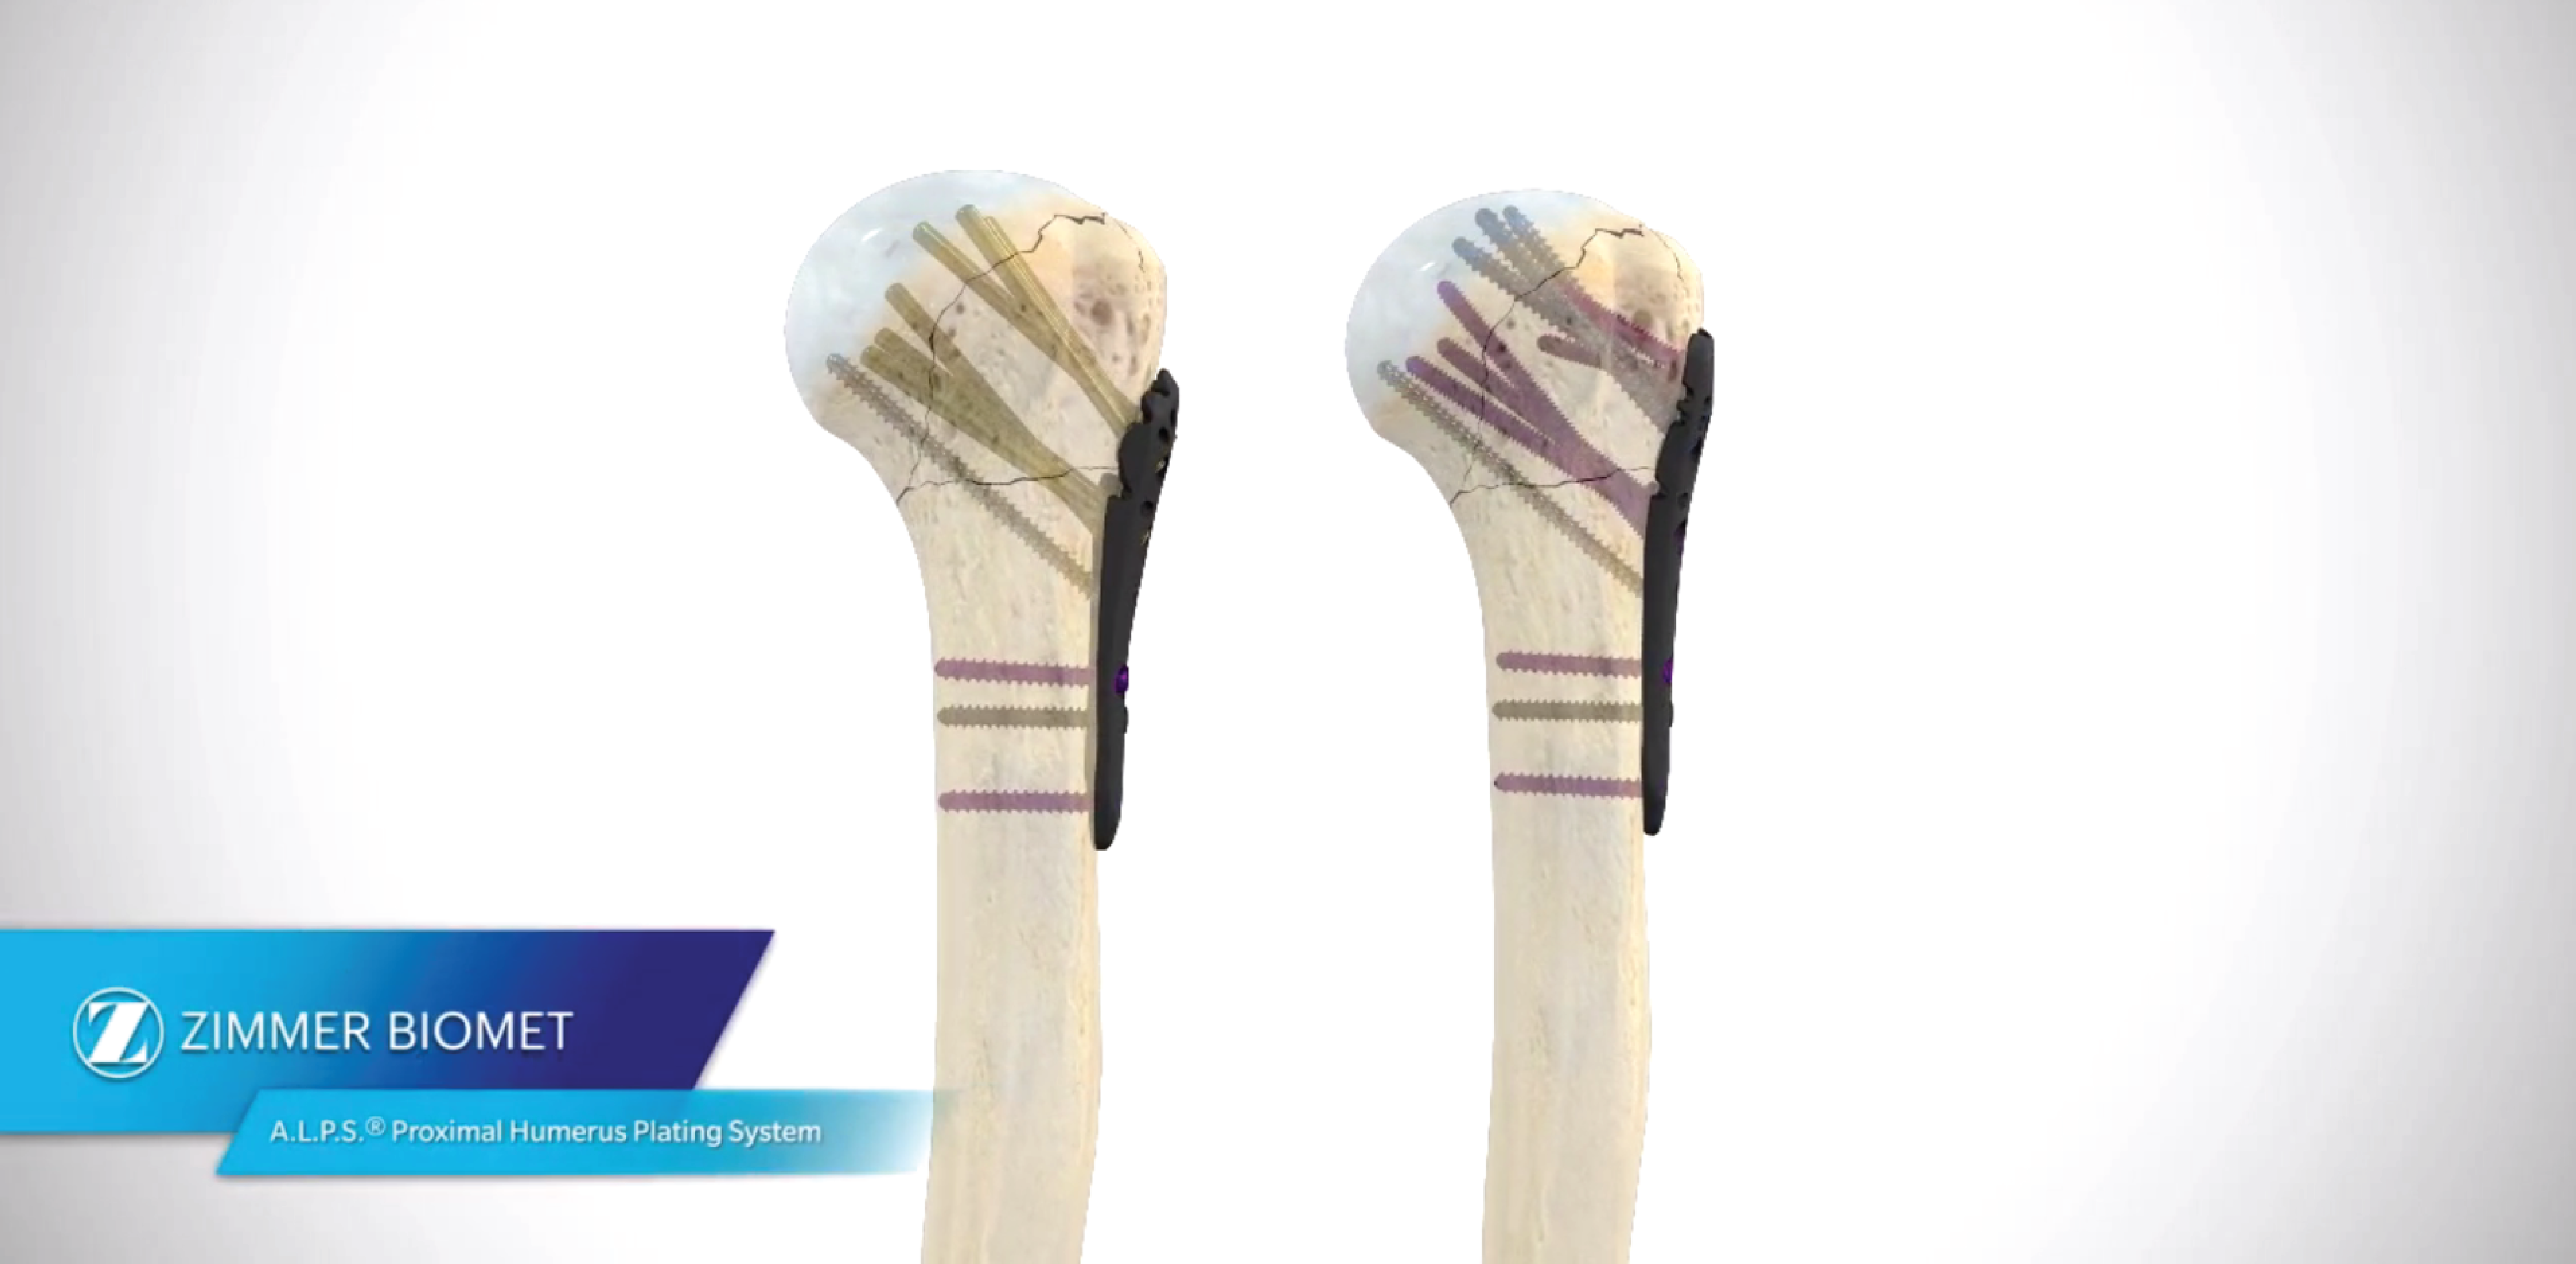 A.L.P.S Proximal Humerus Plating System